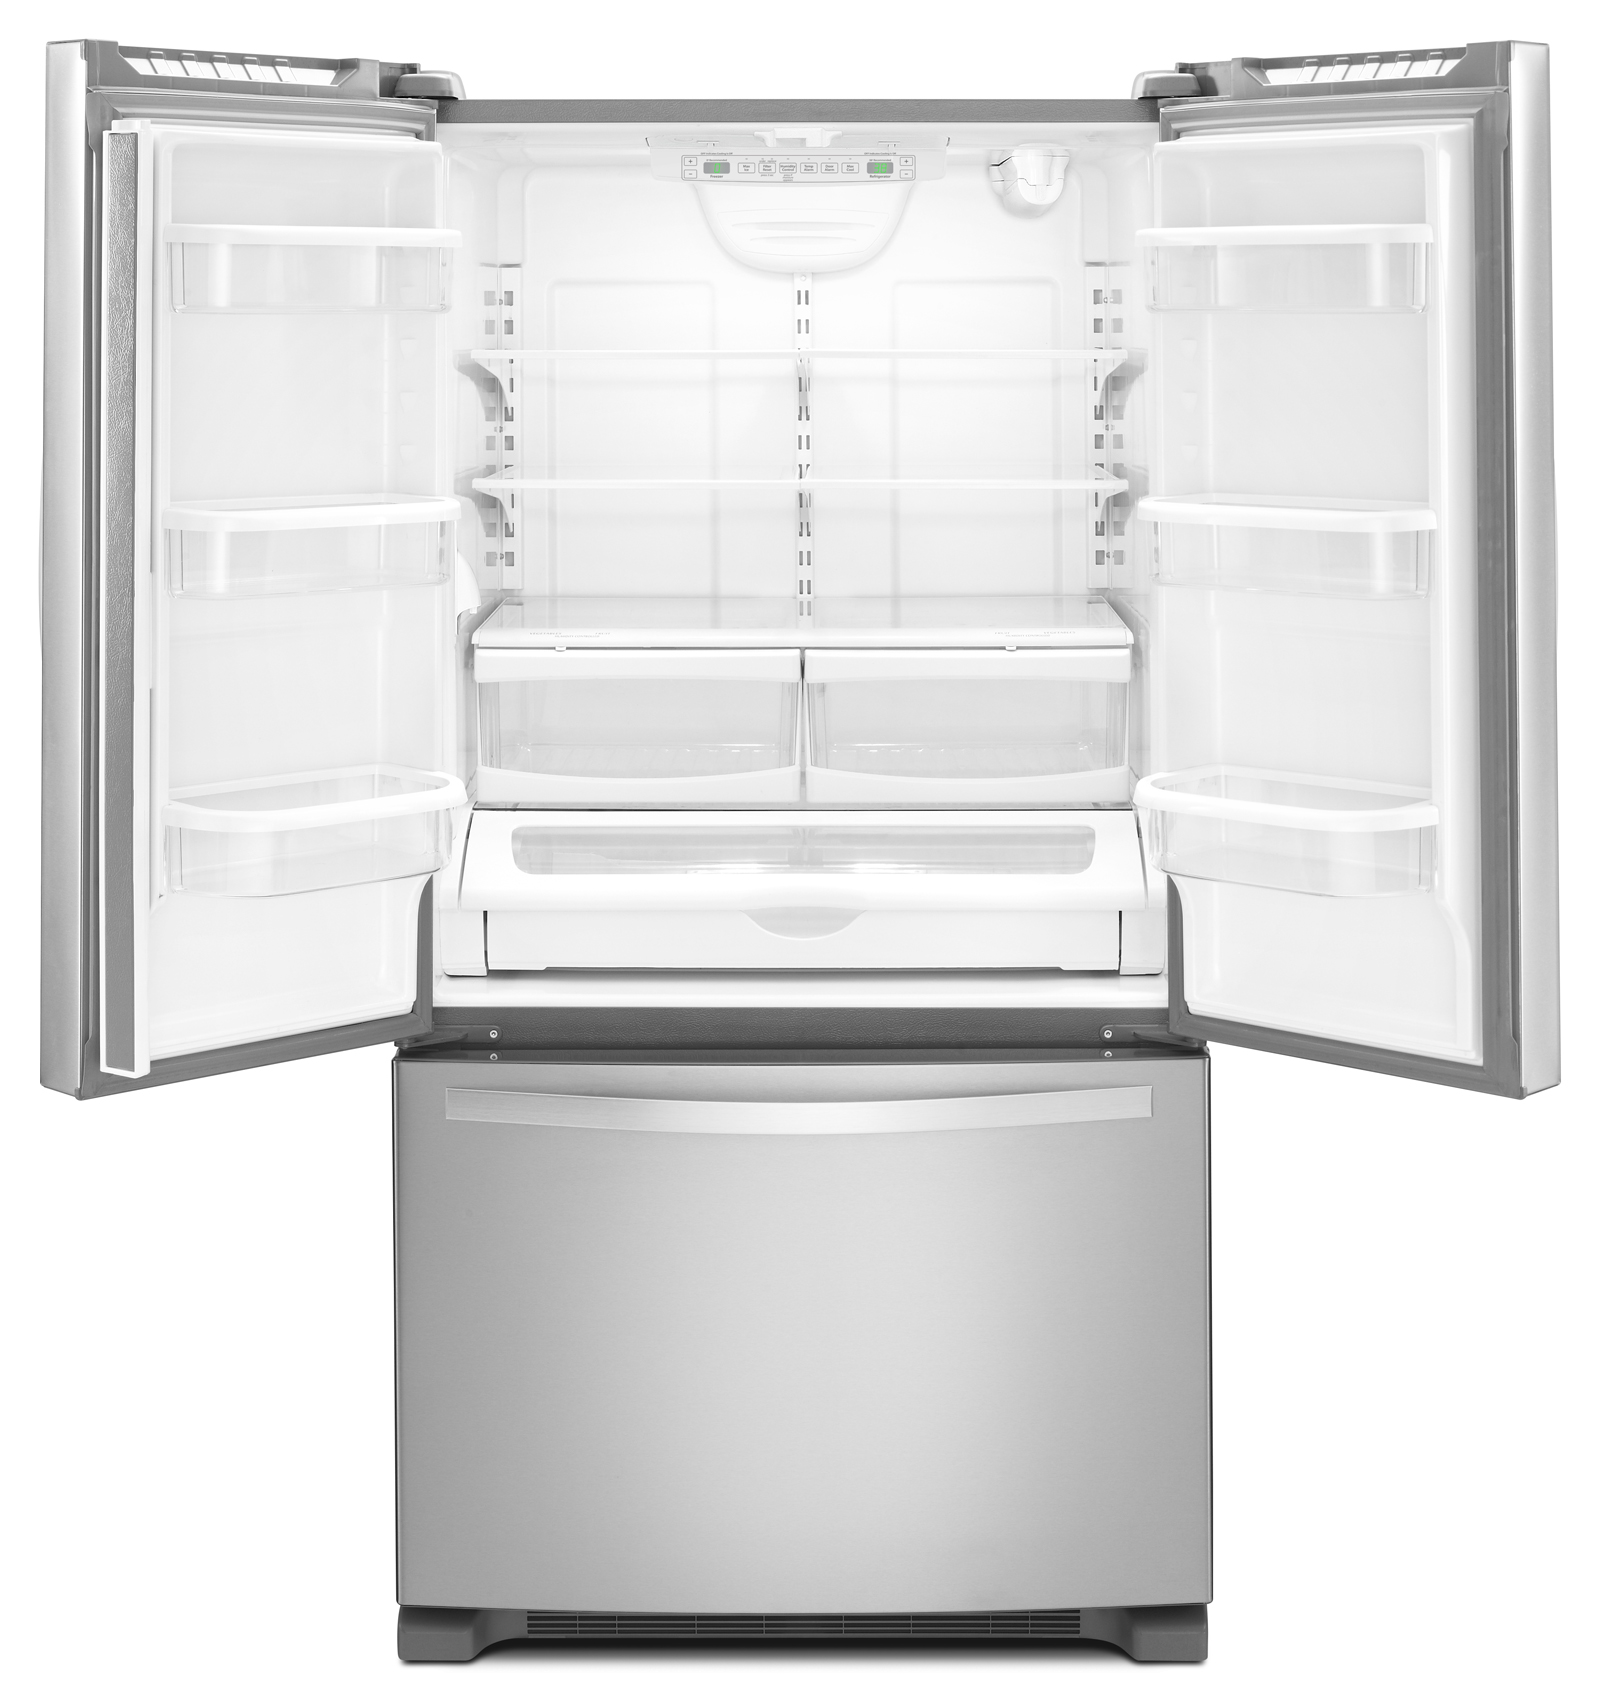 Whirlpool WRF540CWBM 20 cu. ft. Counter-Depth French Door Refrigerator w/ Interior Water Dispenser - Stainless Steel